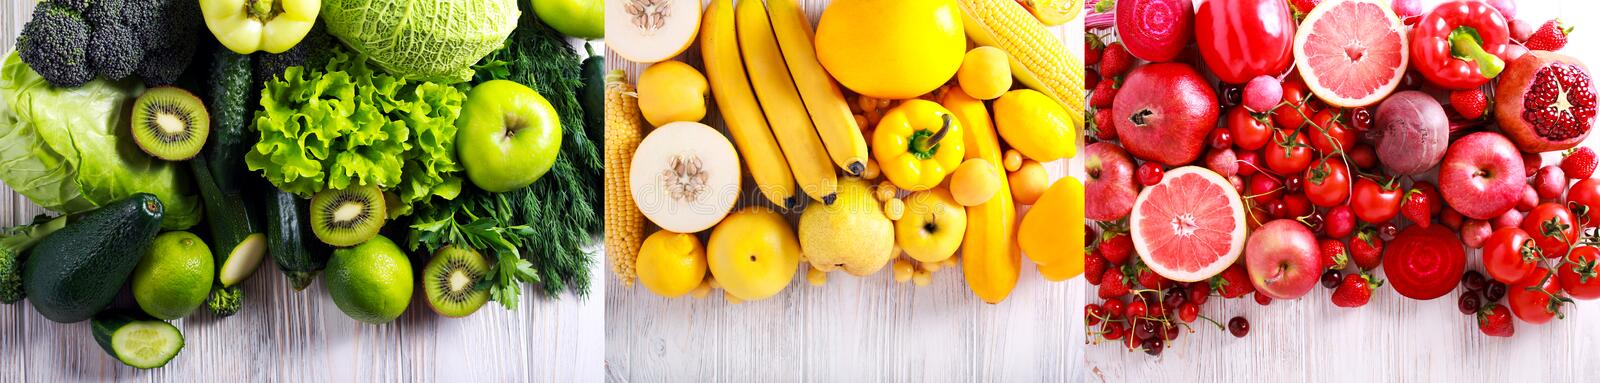 Green, yellow and red vegetables and fruits. Wide border green, yellow and red vegetables and fruits royalty free stock image